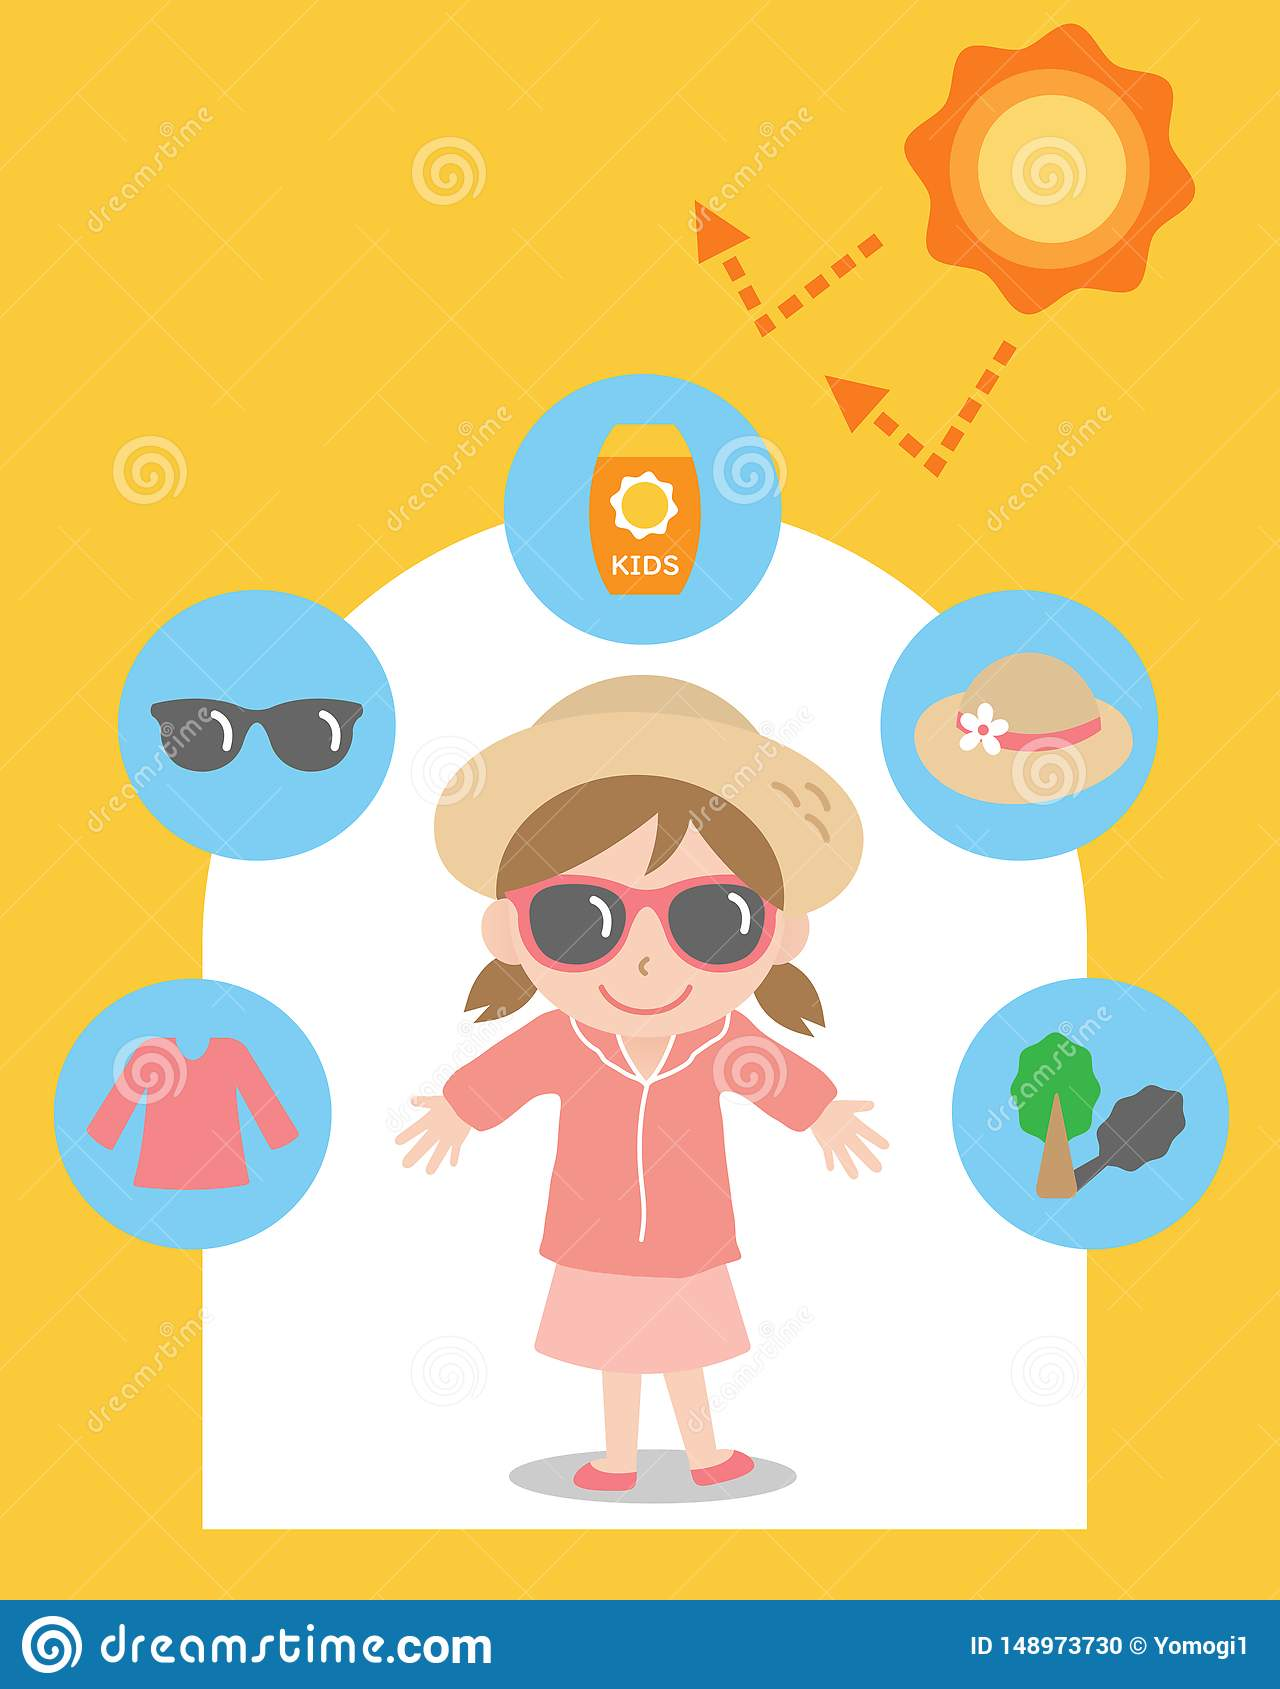 4eef9ccd9e8 Sun protection items keep kid safe from harmful UV rays. health care  concept. More similar stock illustrations